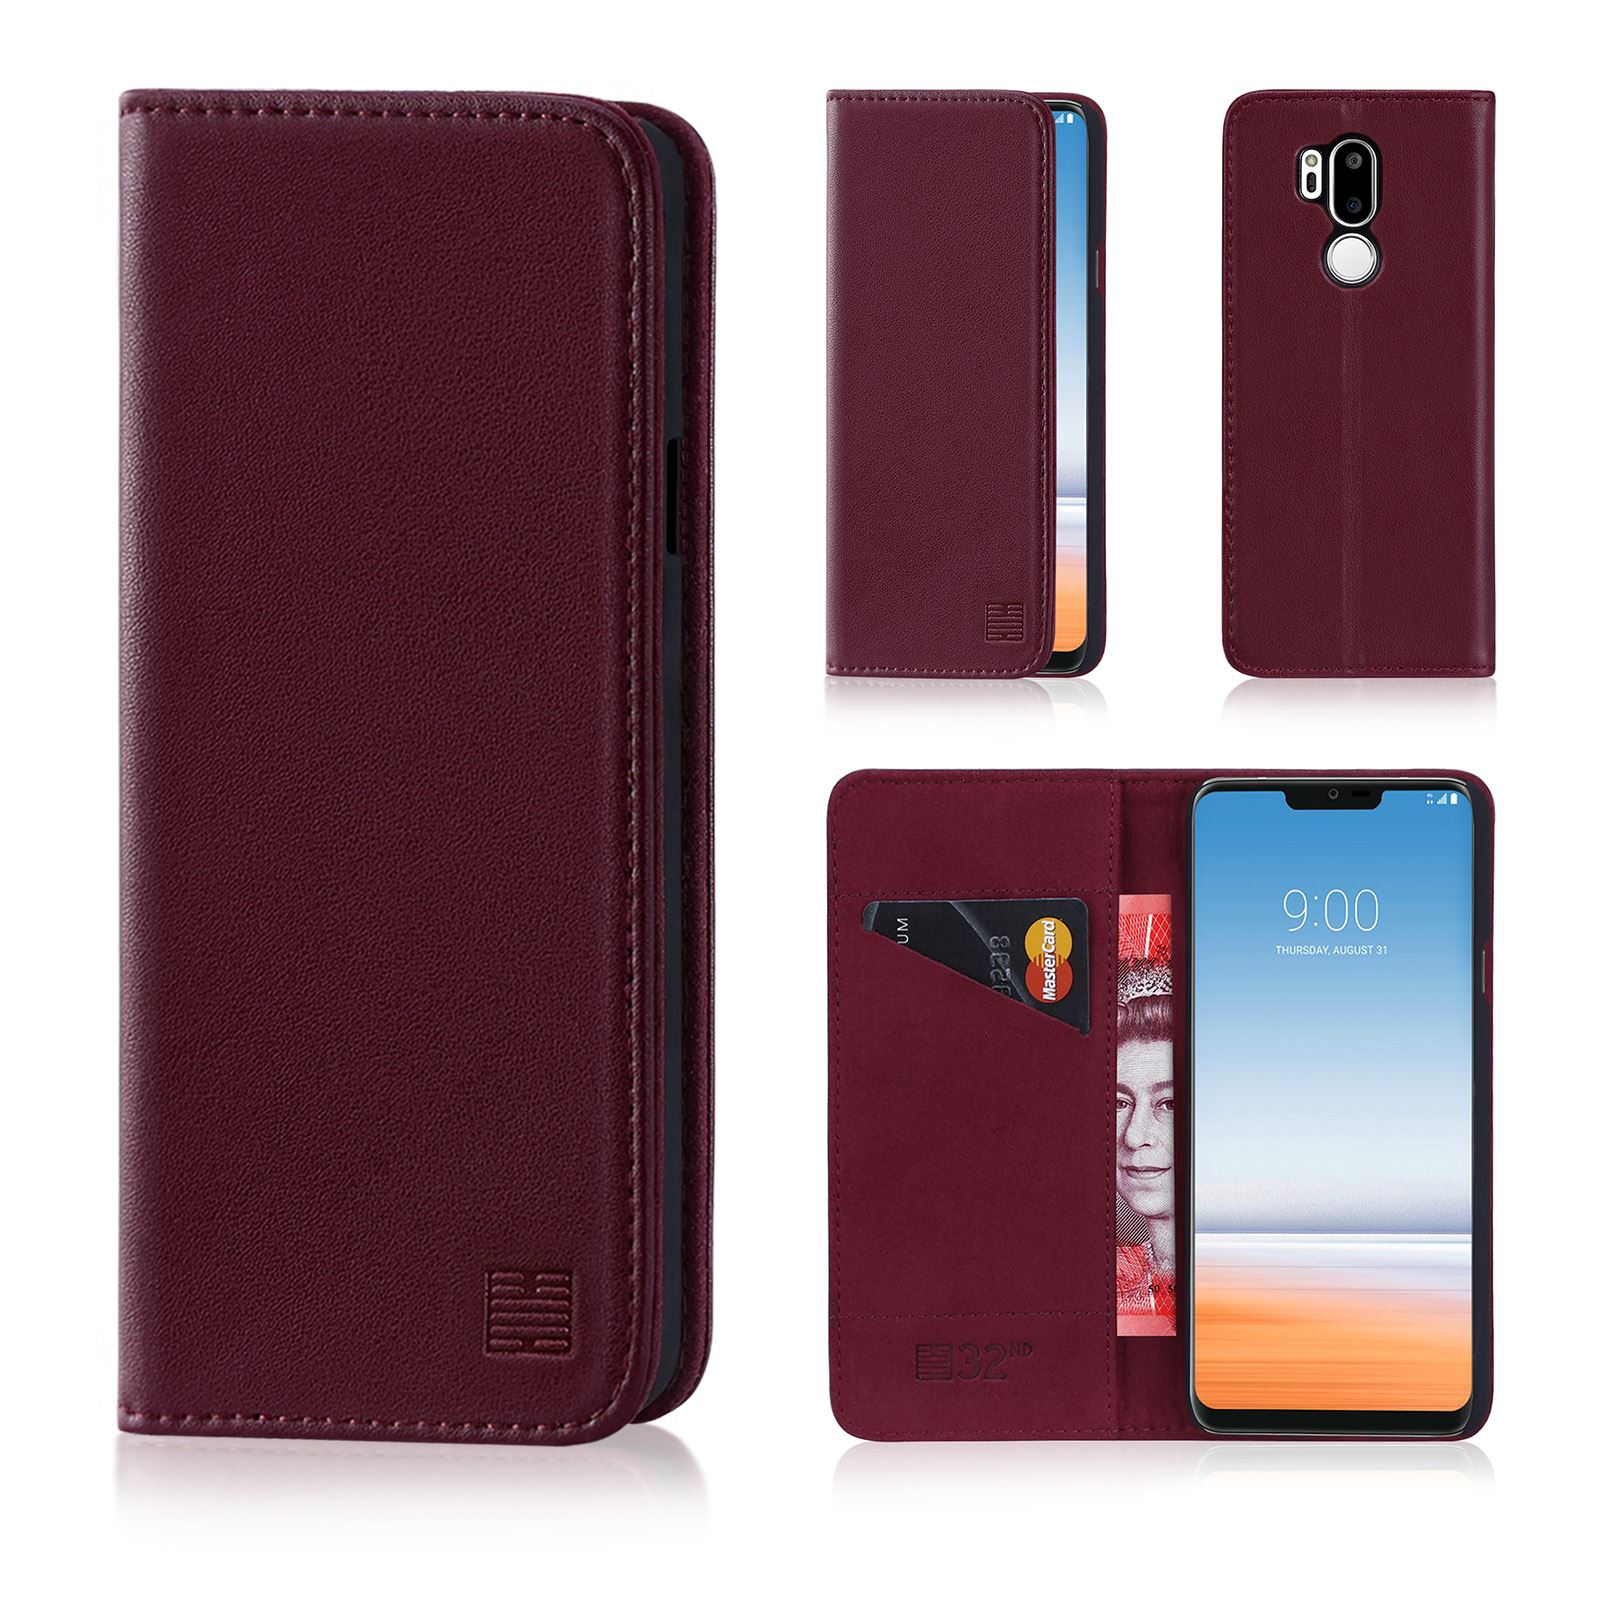 on sale 47435 32681 Details about 32nd Classic Series - Real Leather Book Wallet Case Cover For  LG G7 ThinQ